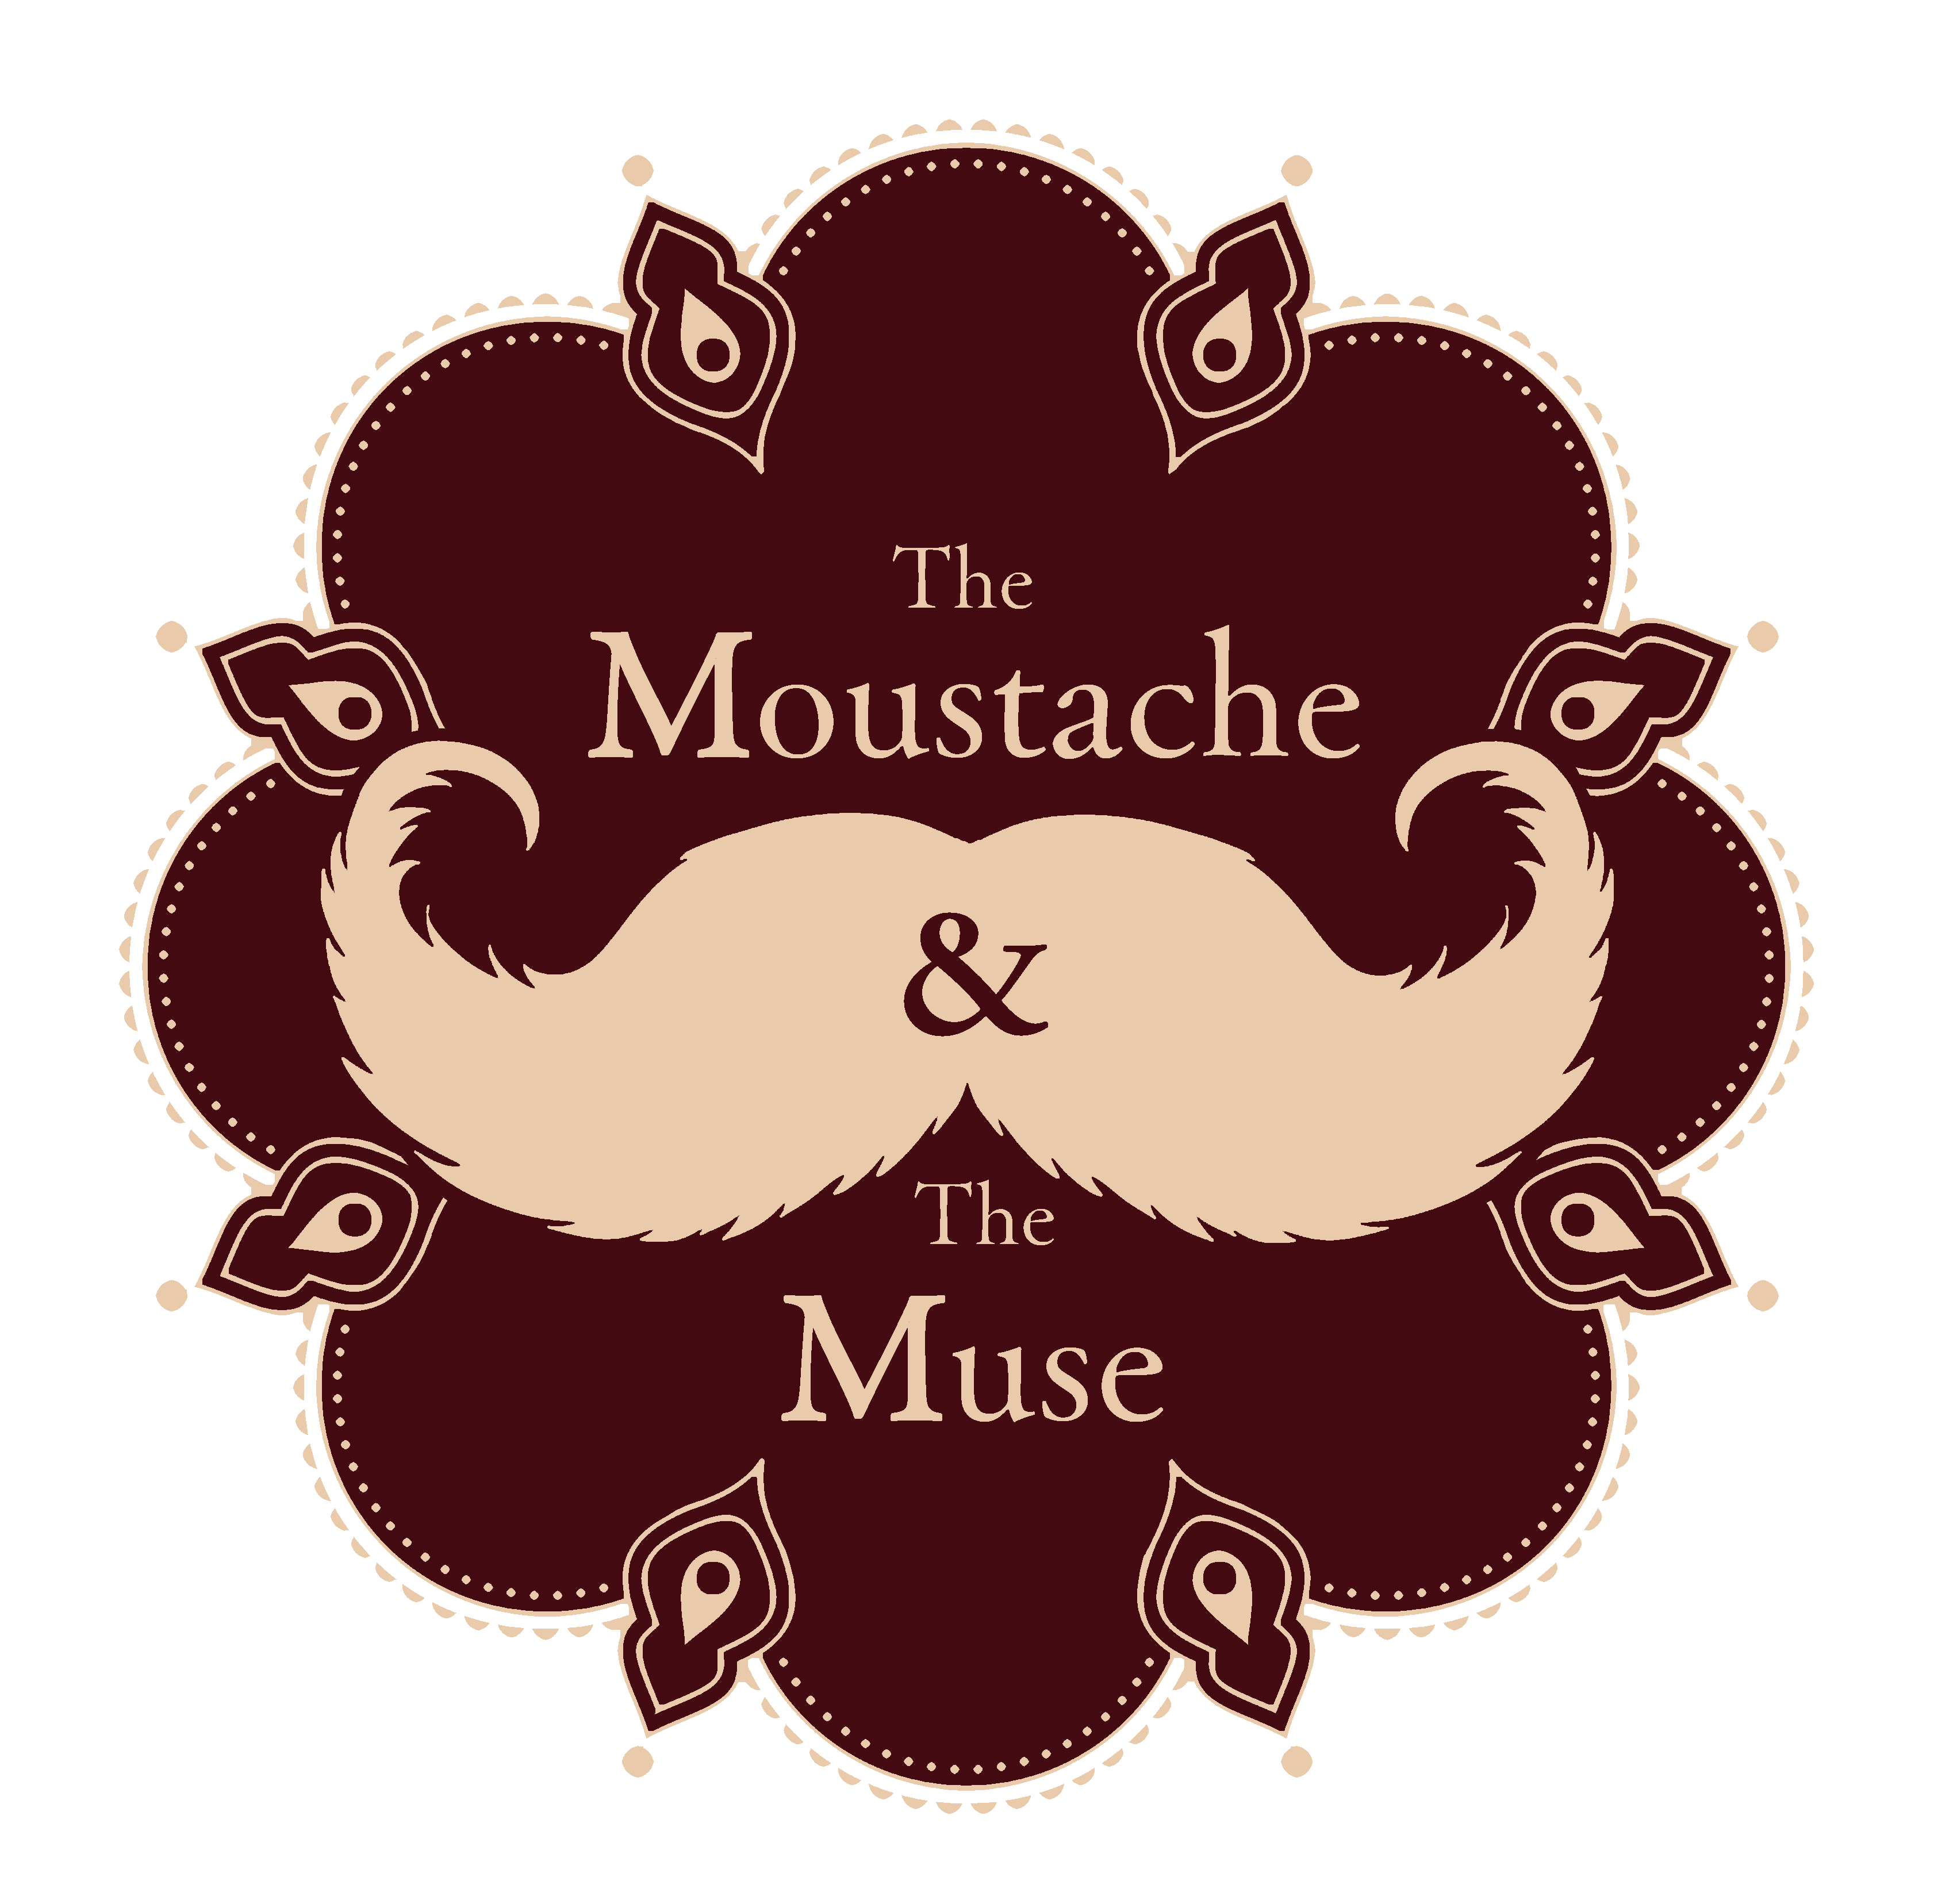 The Moustache & The Muse